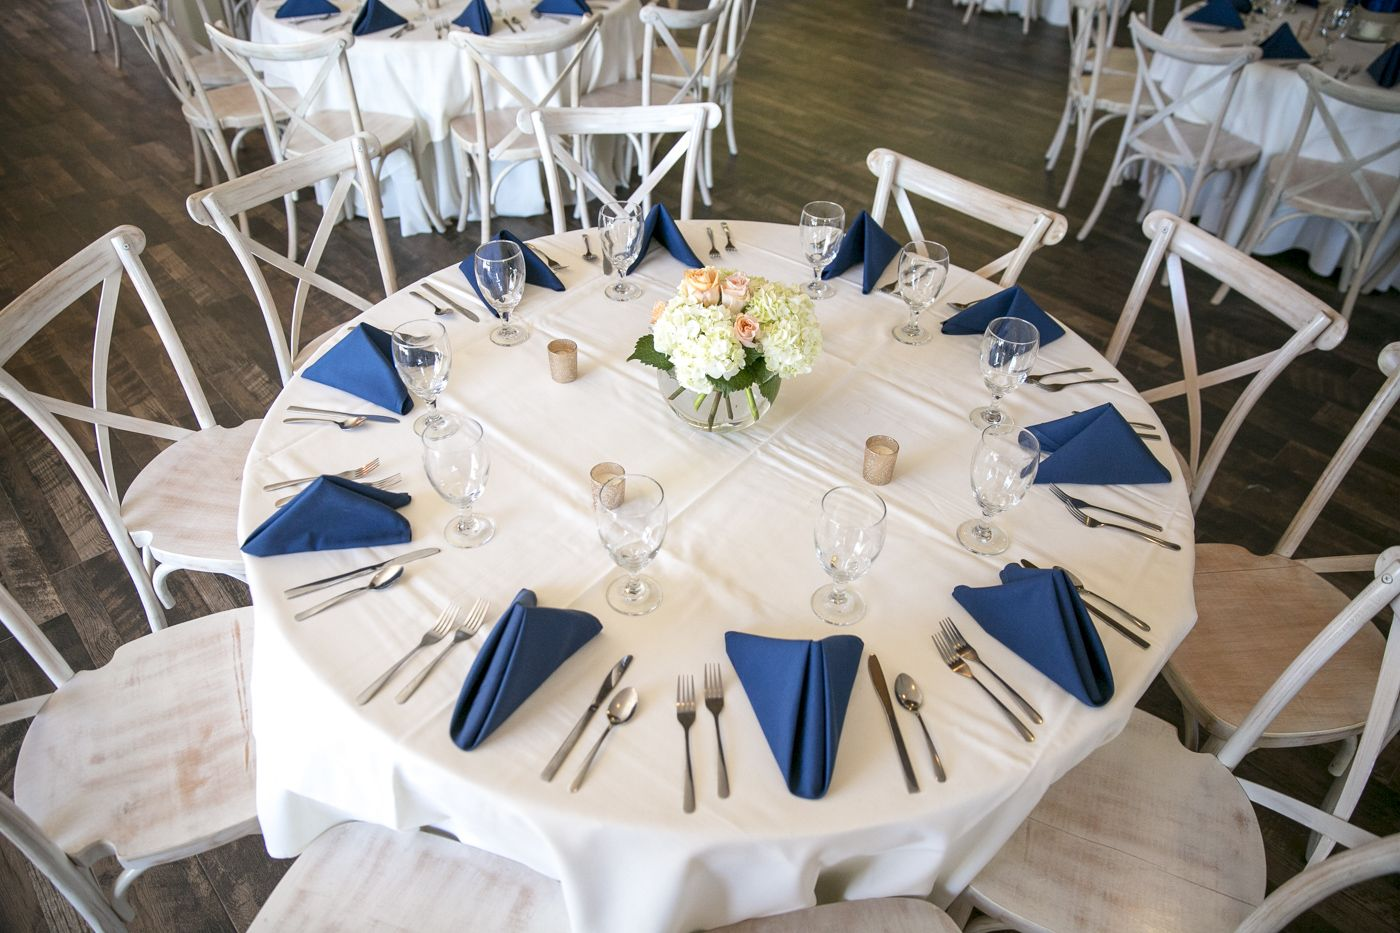 Copper roux reception table complete with navy napkins